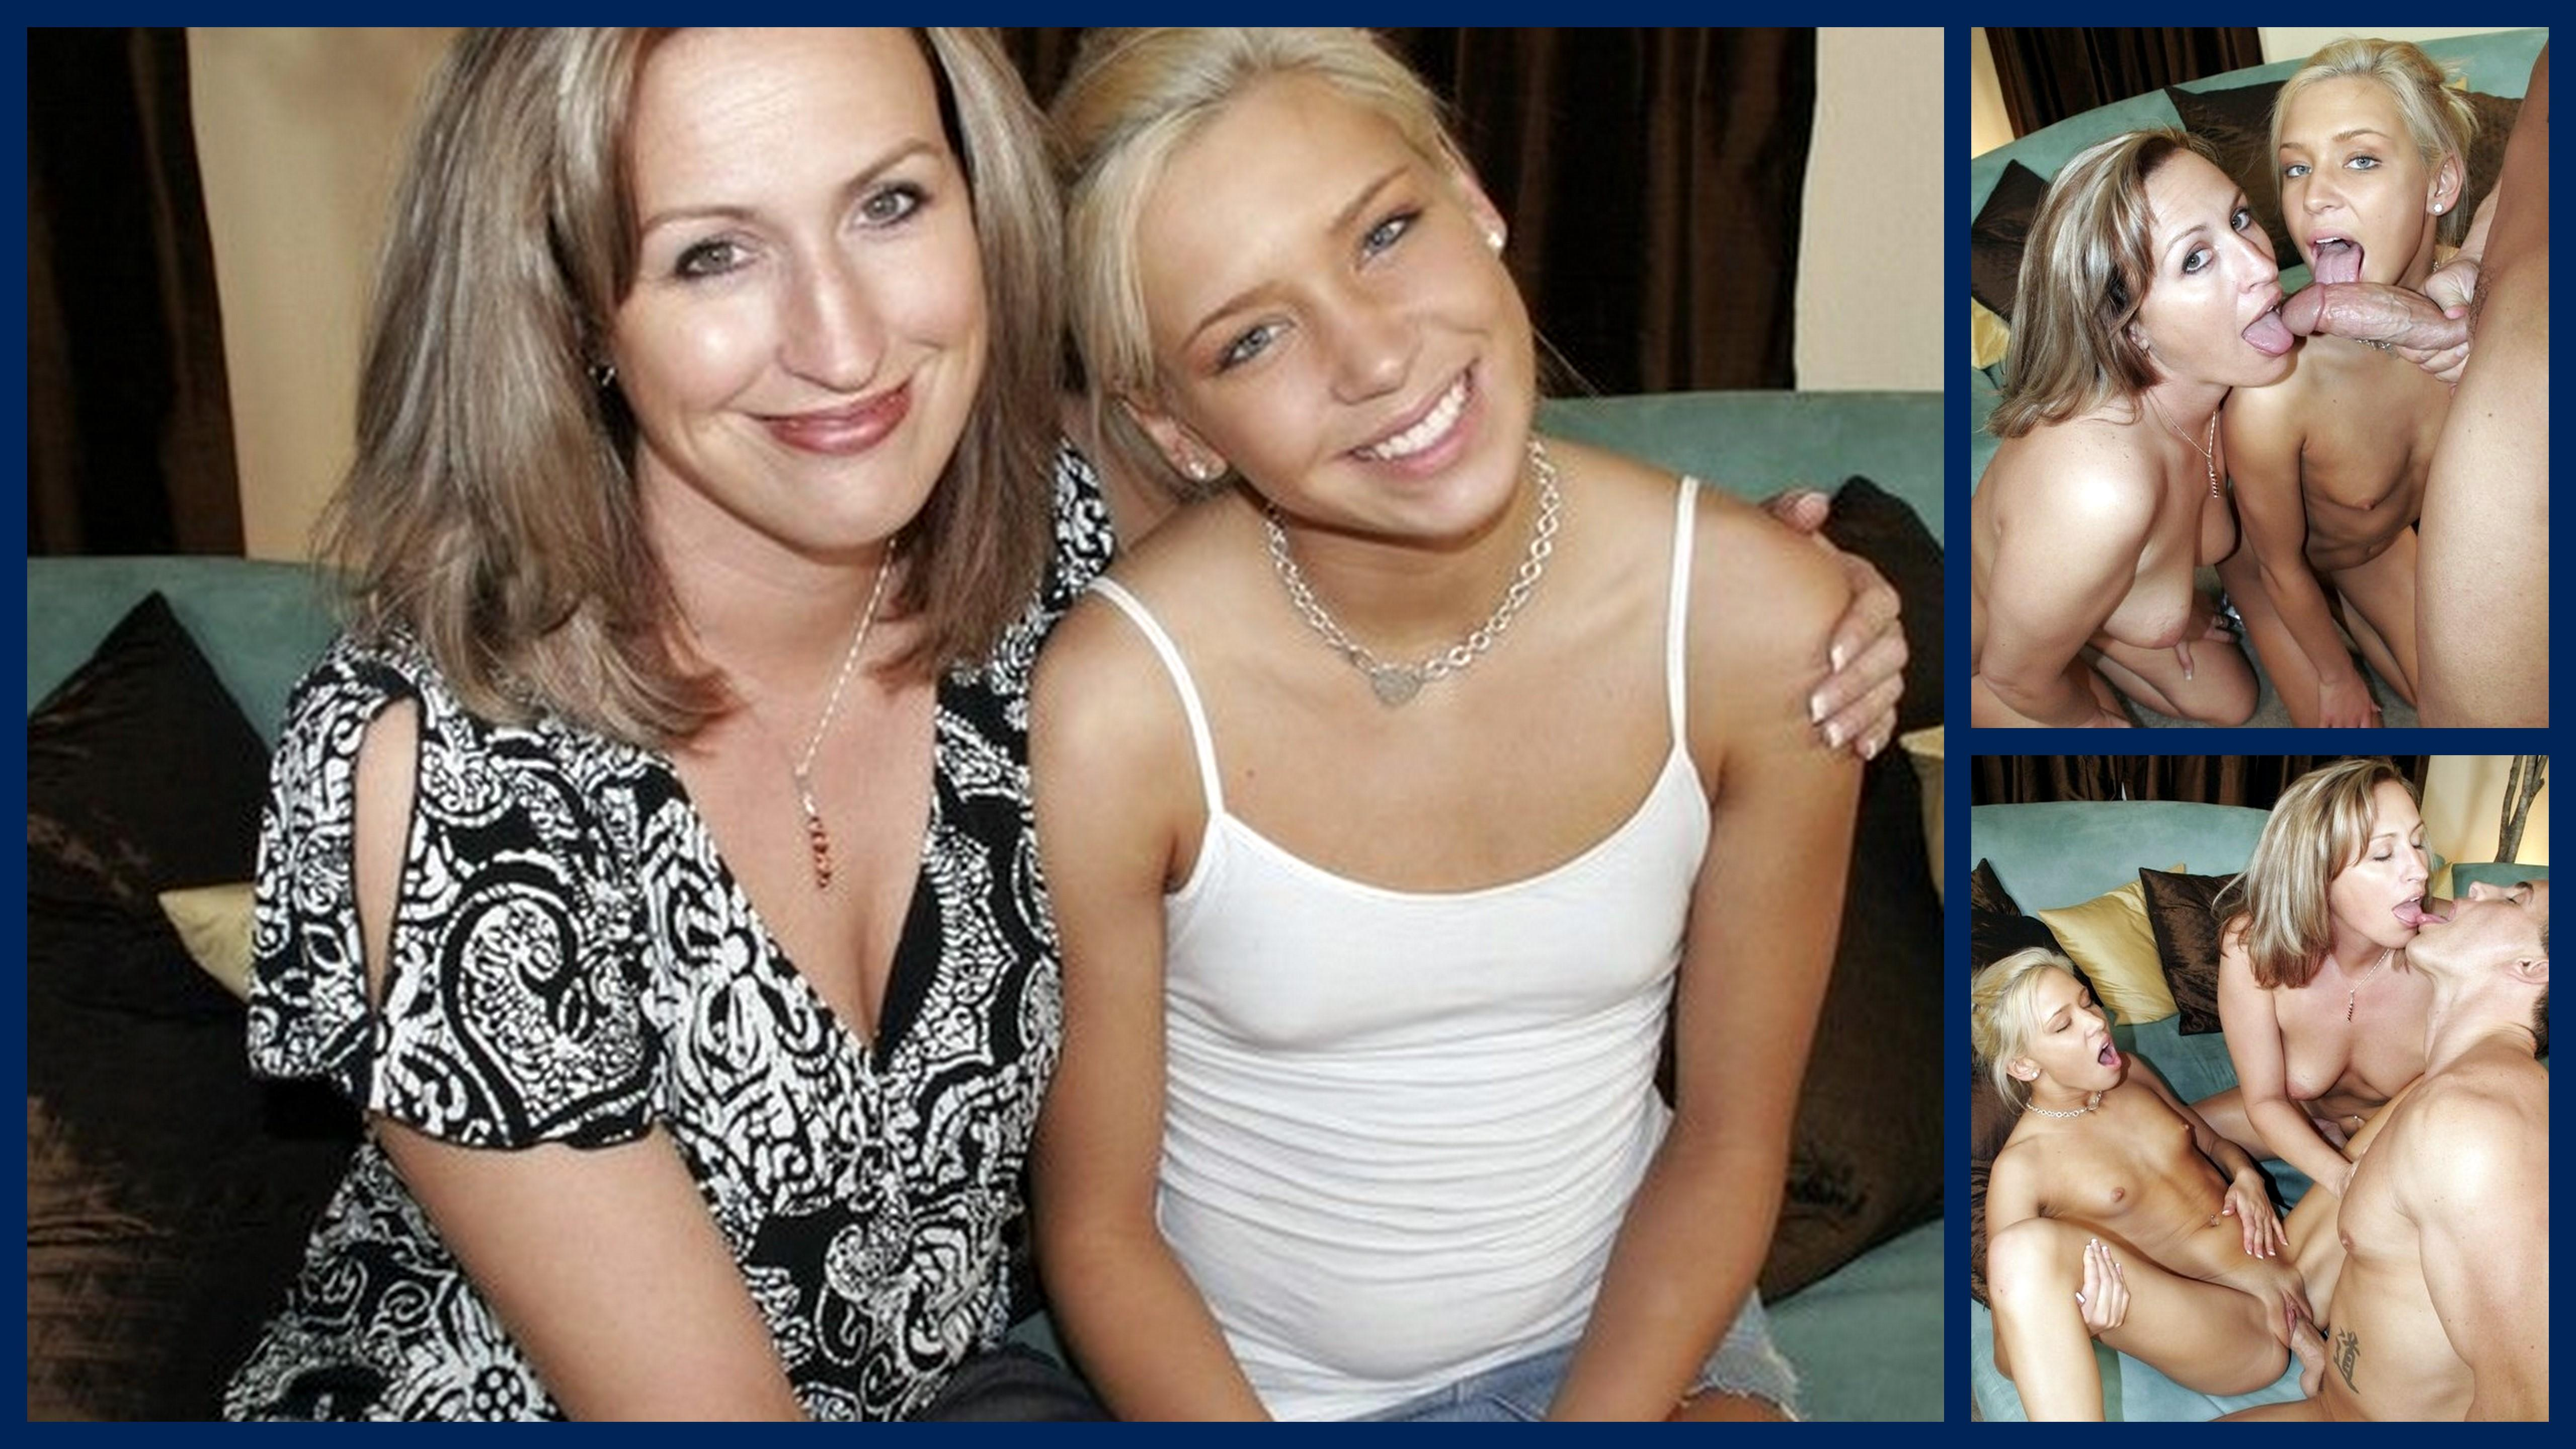 Authentic Mother And Daughter Porn Pics real mother daughter naked - xxxpicss